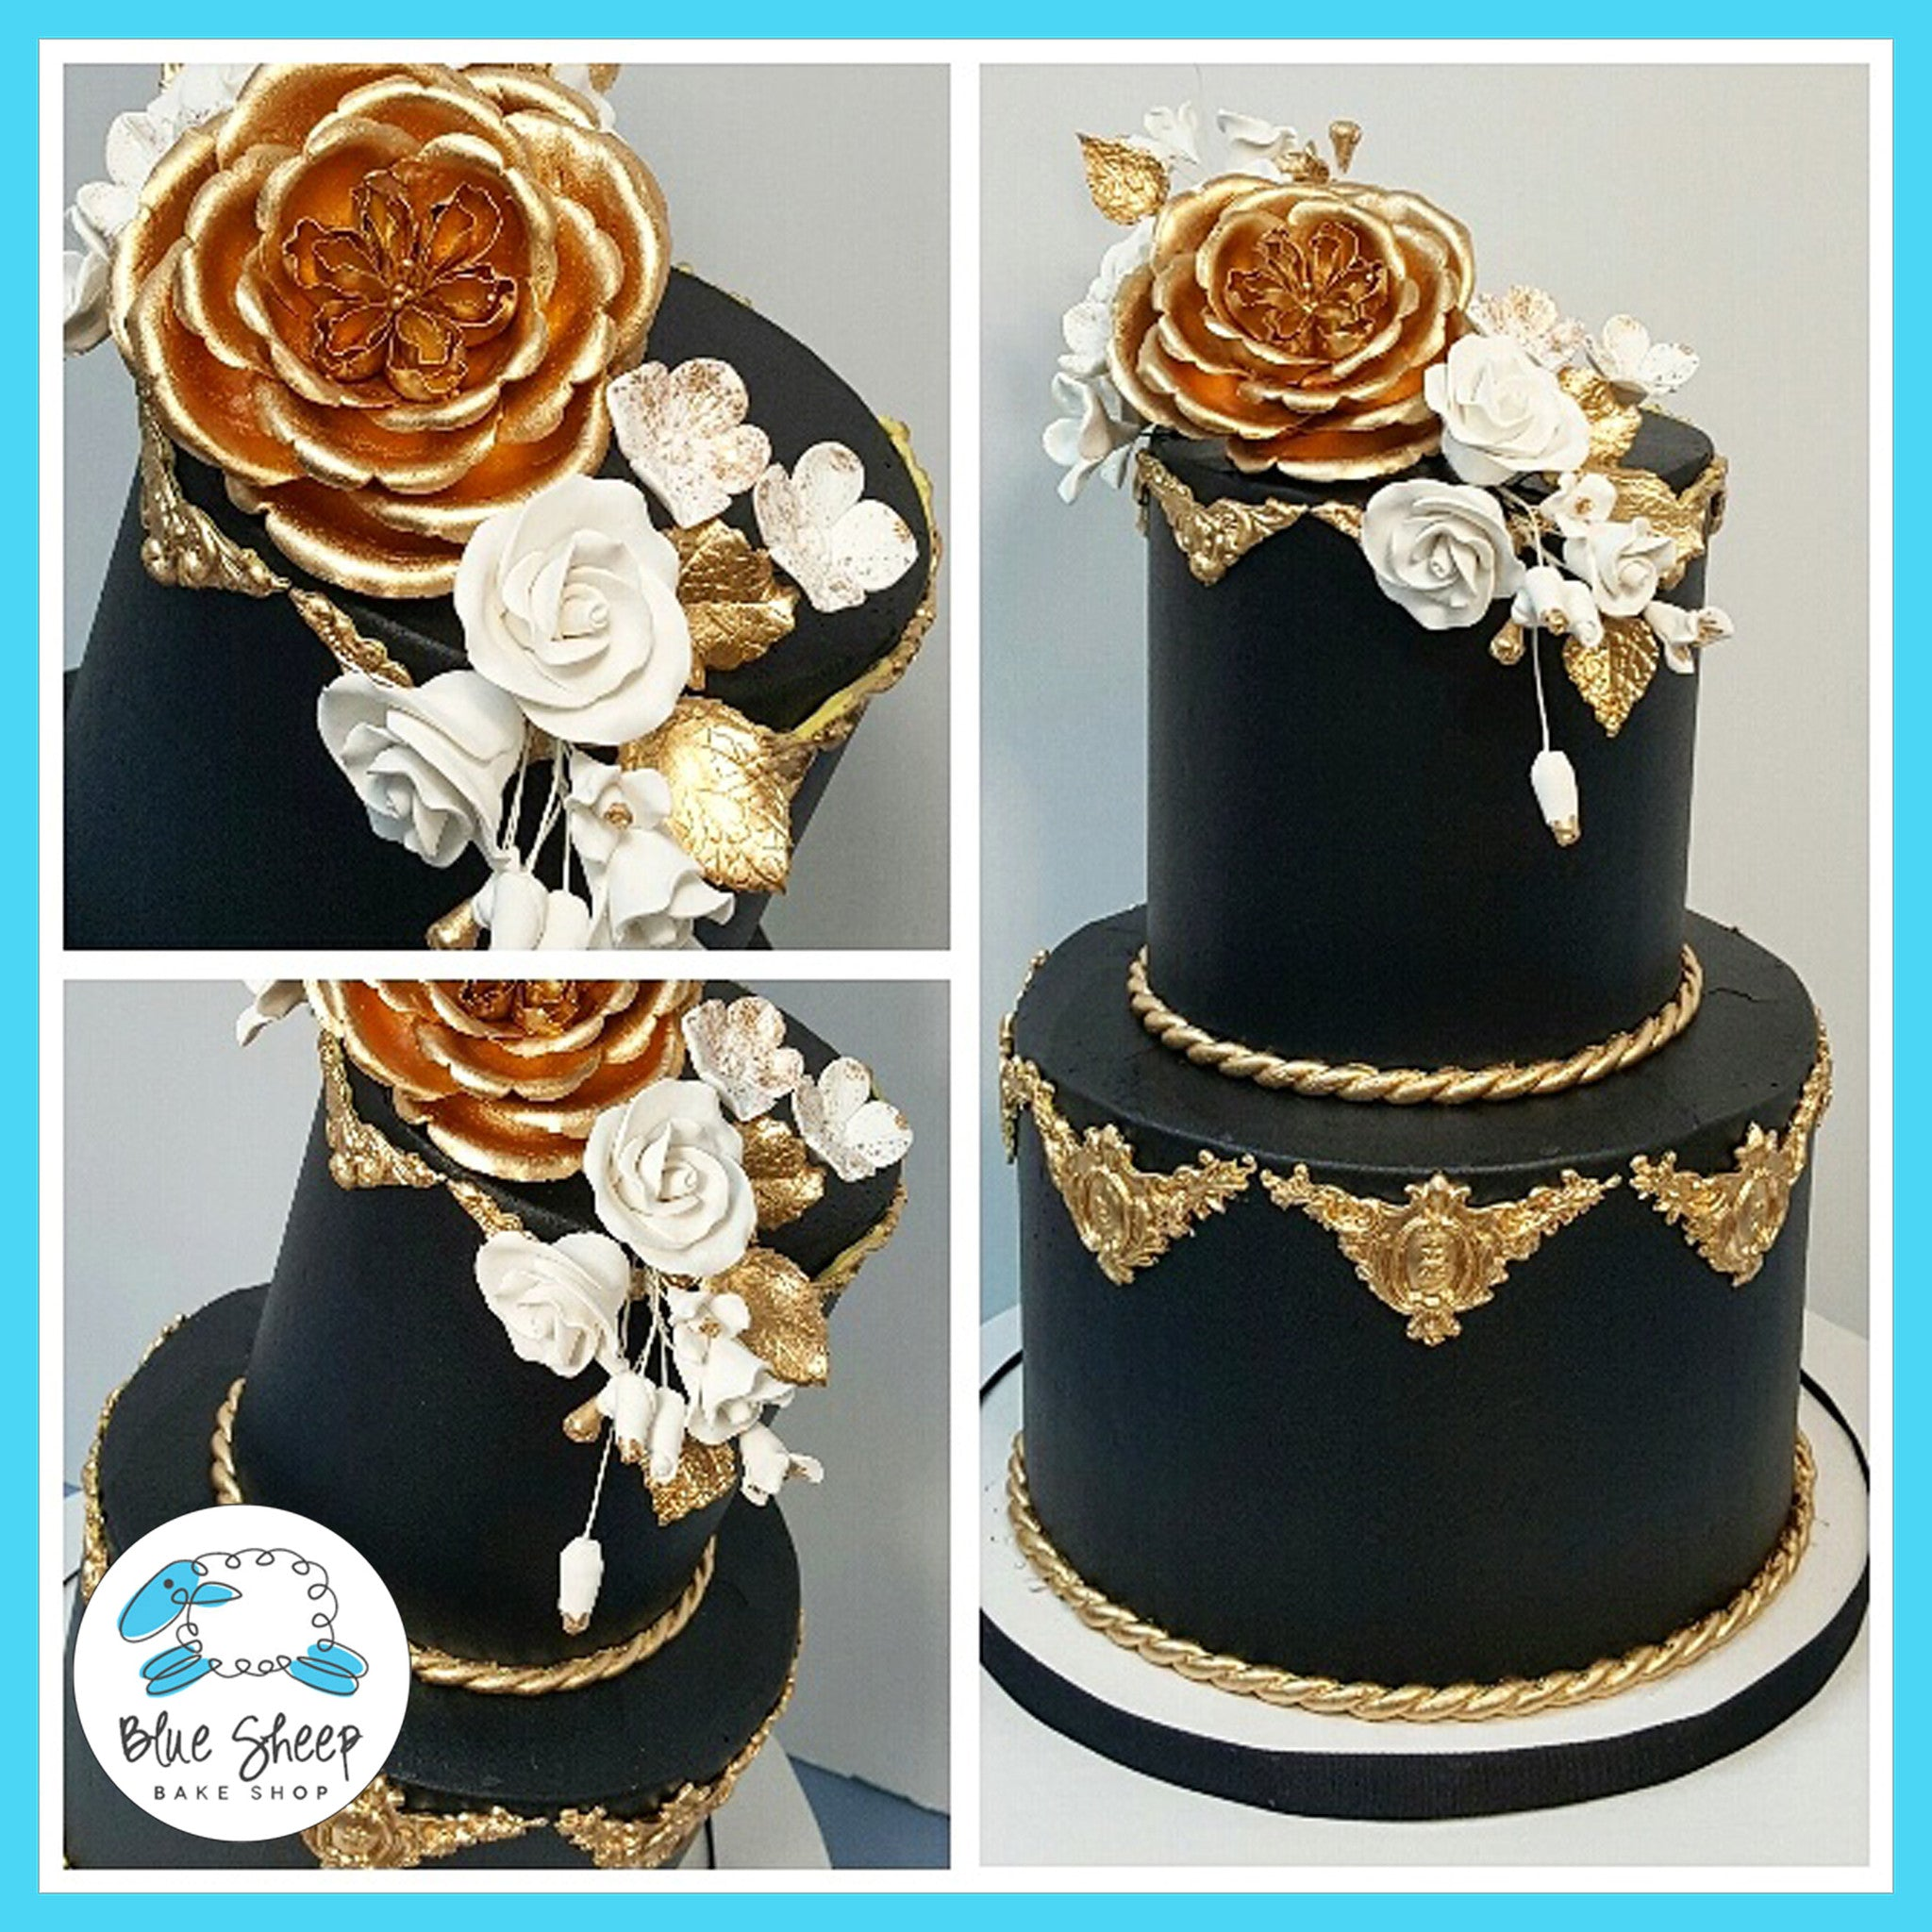 Black and Gold Buttercream Wedding Cake NJ | Blue Sheep Bake Shop